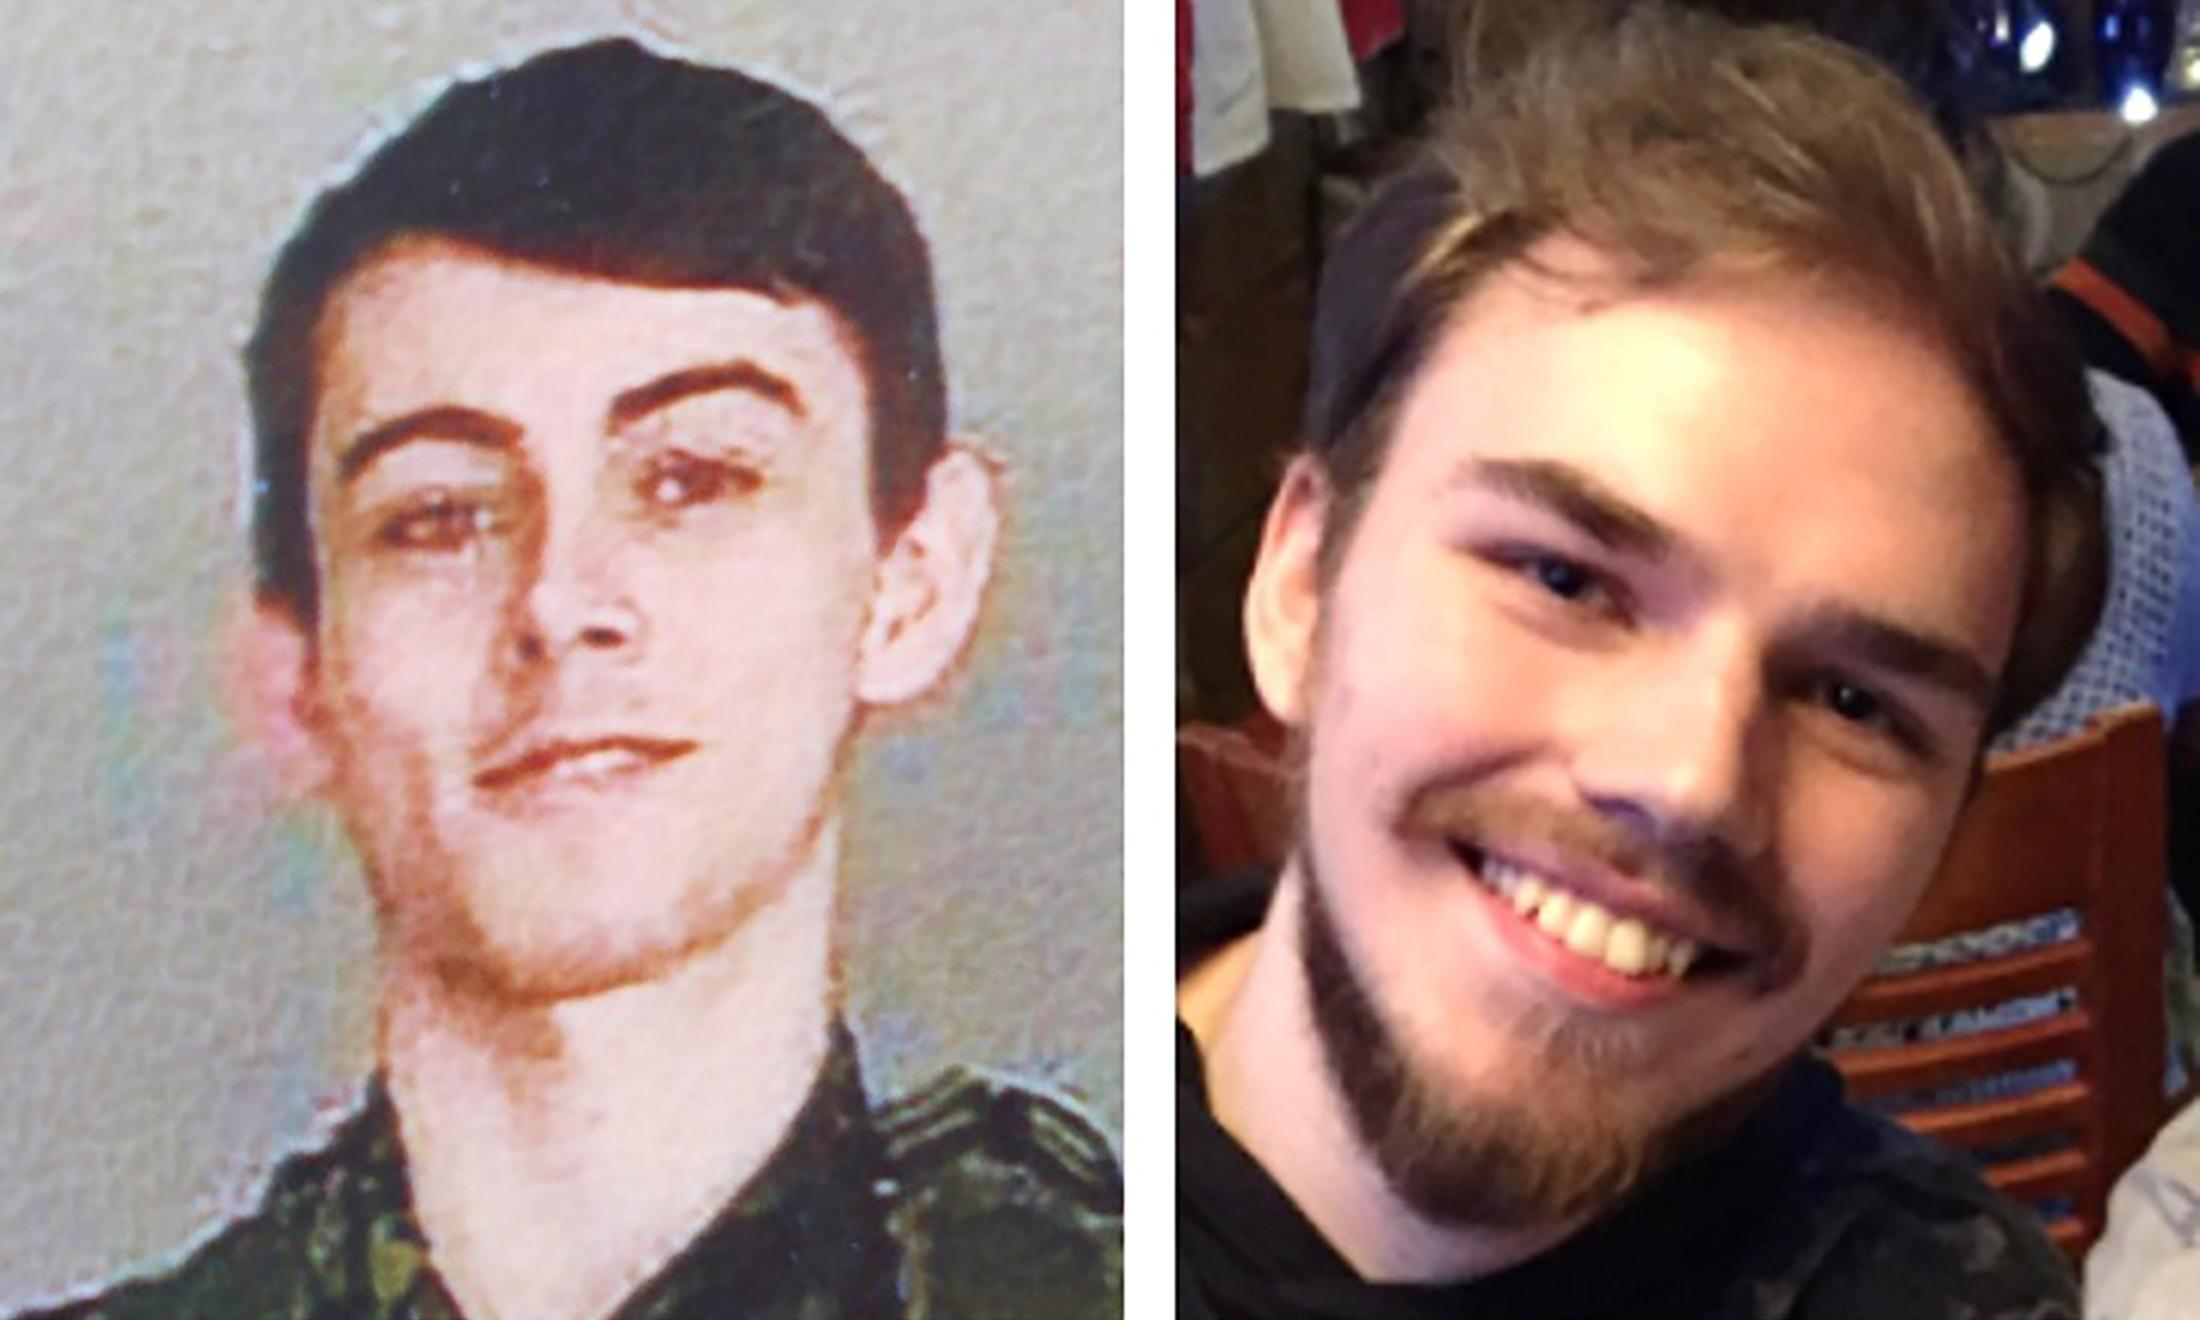 Canada: two teens thought missing named as suspects in double murder